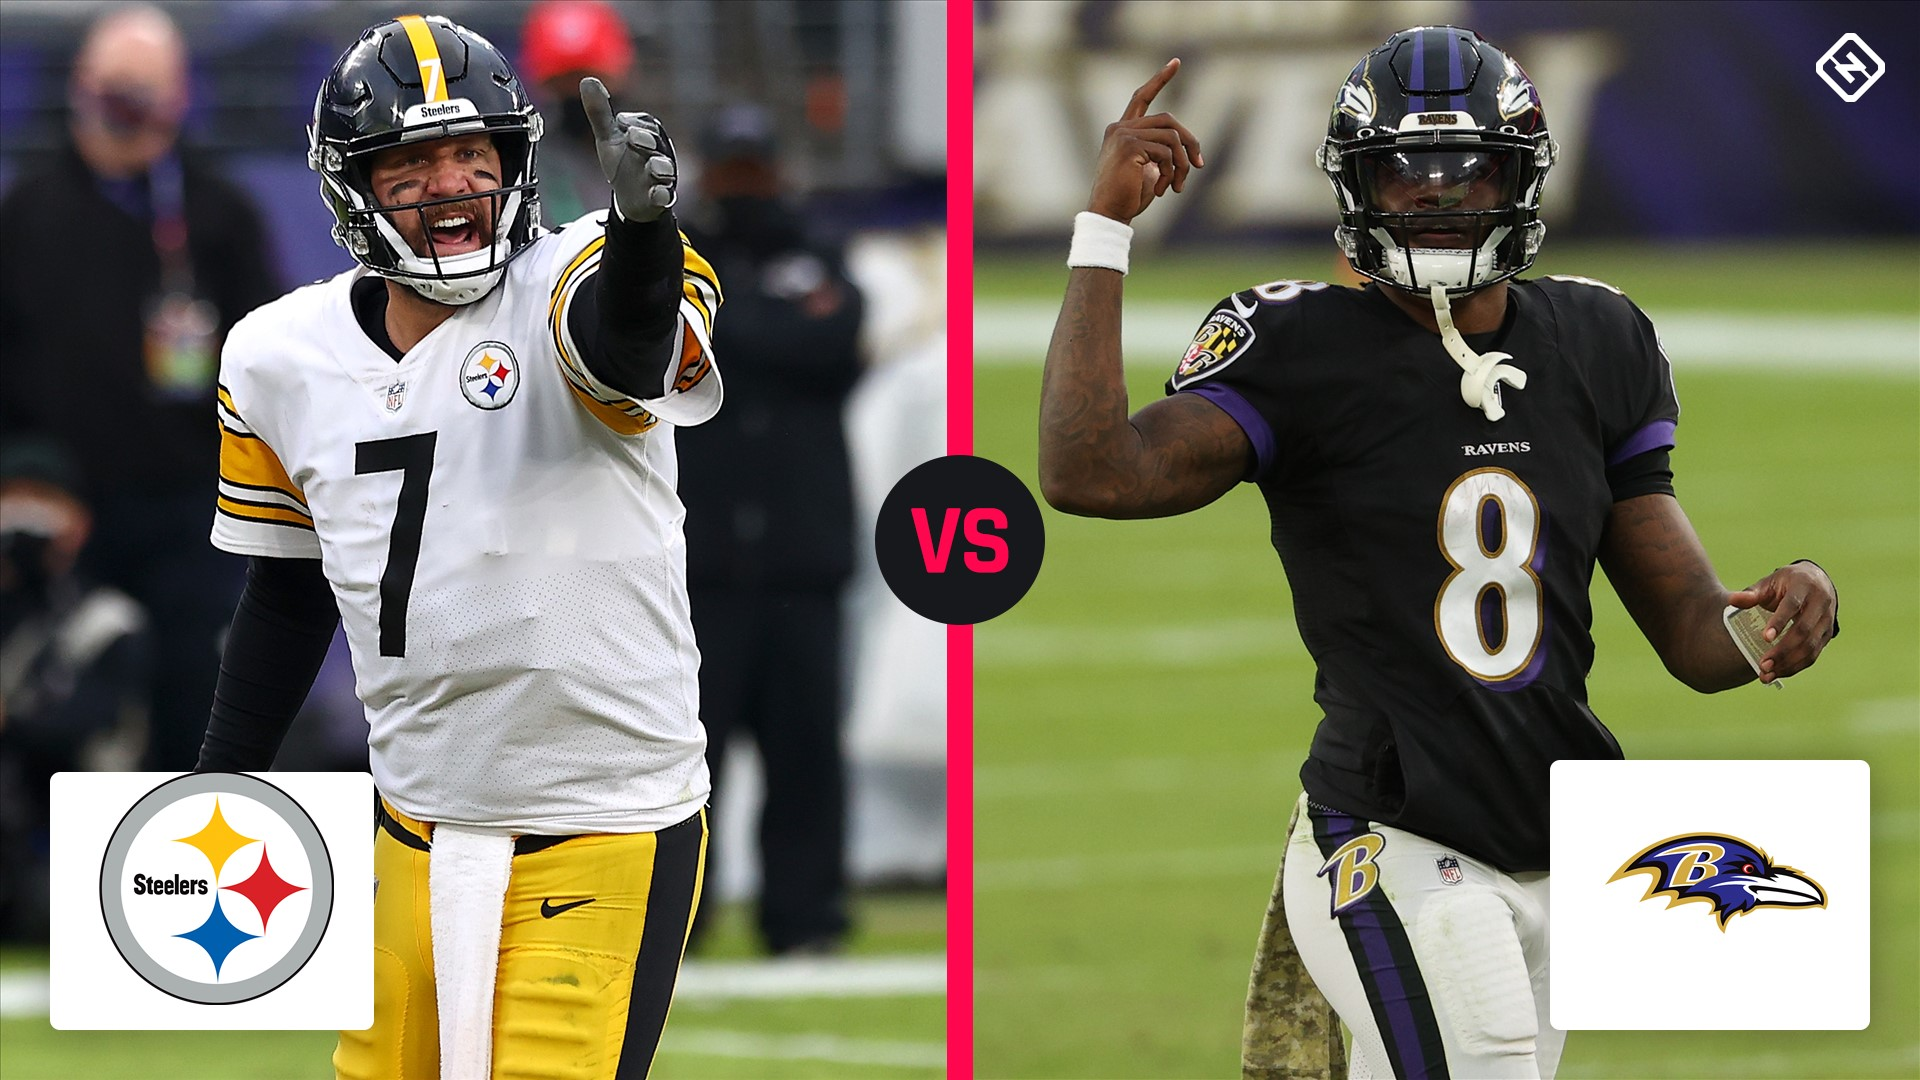 When will Steelers vs. Ravens be played? Week 12 game postponed from Thanksgiving after COVID tests